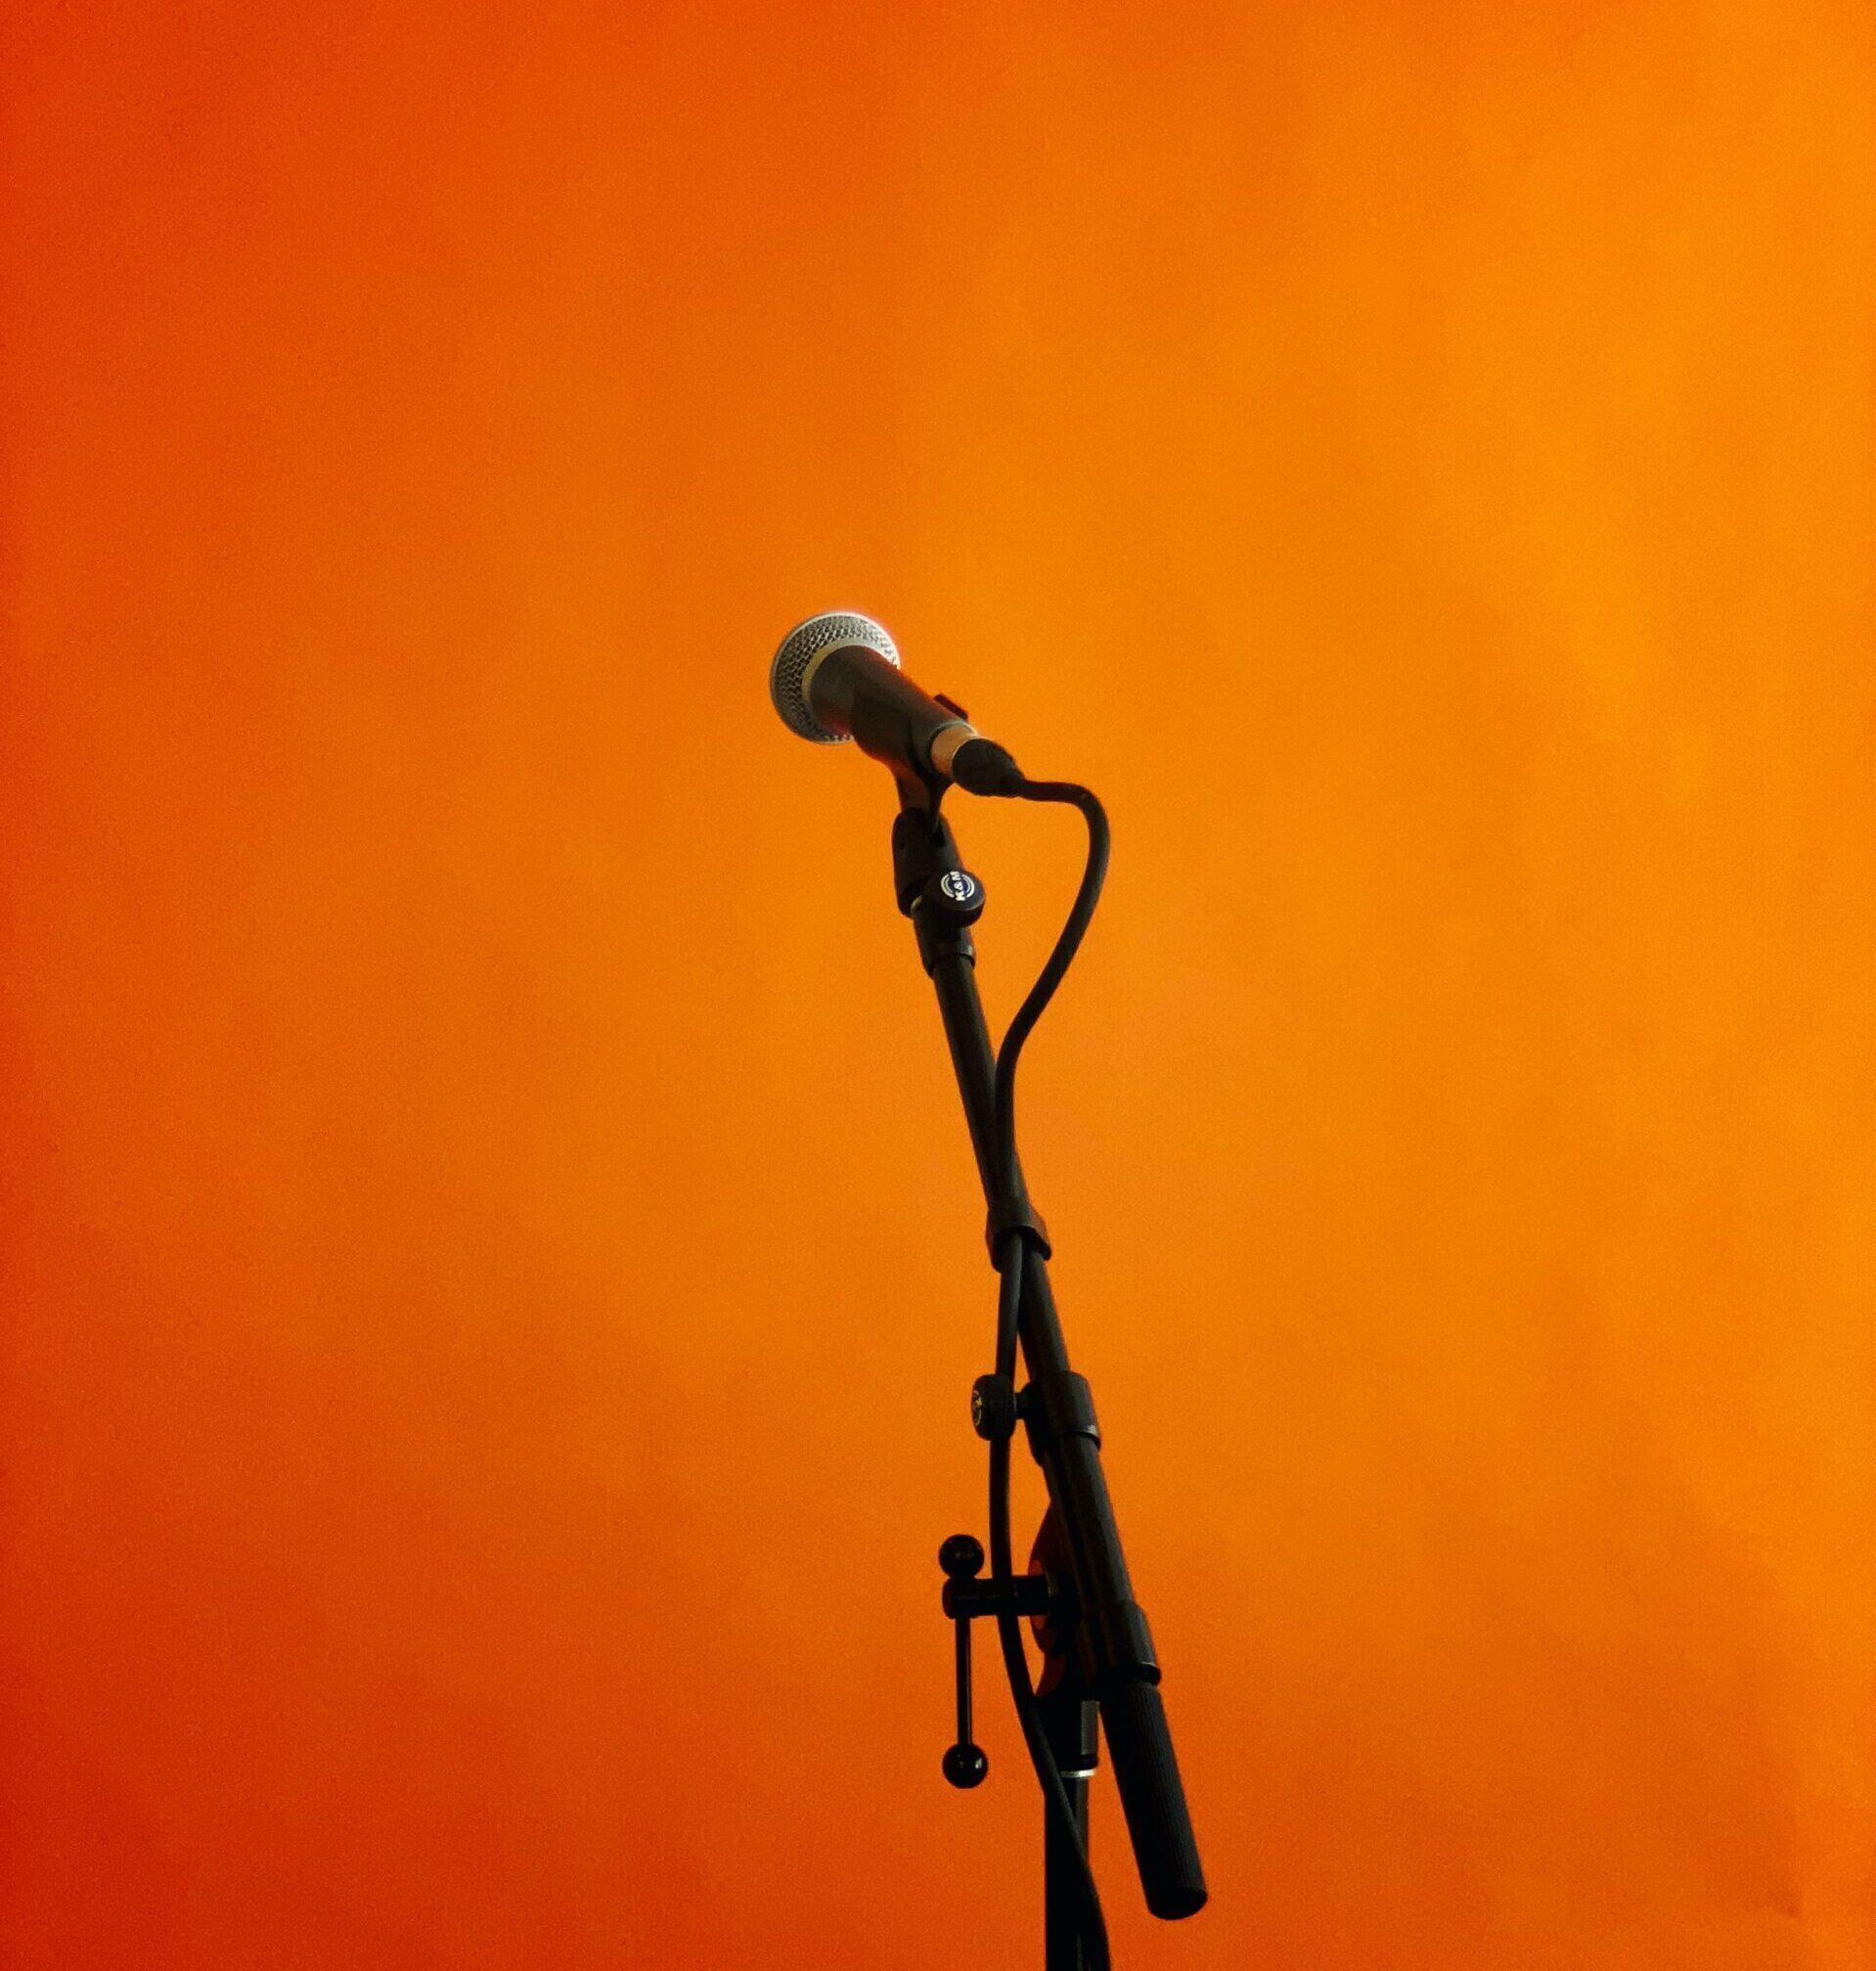 Black microphone and stand on orange background